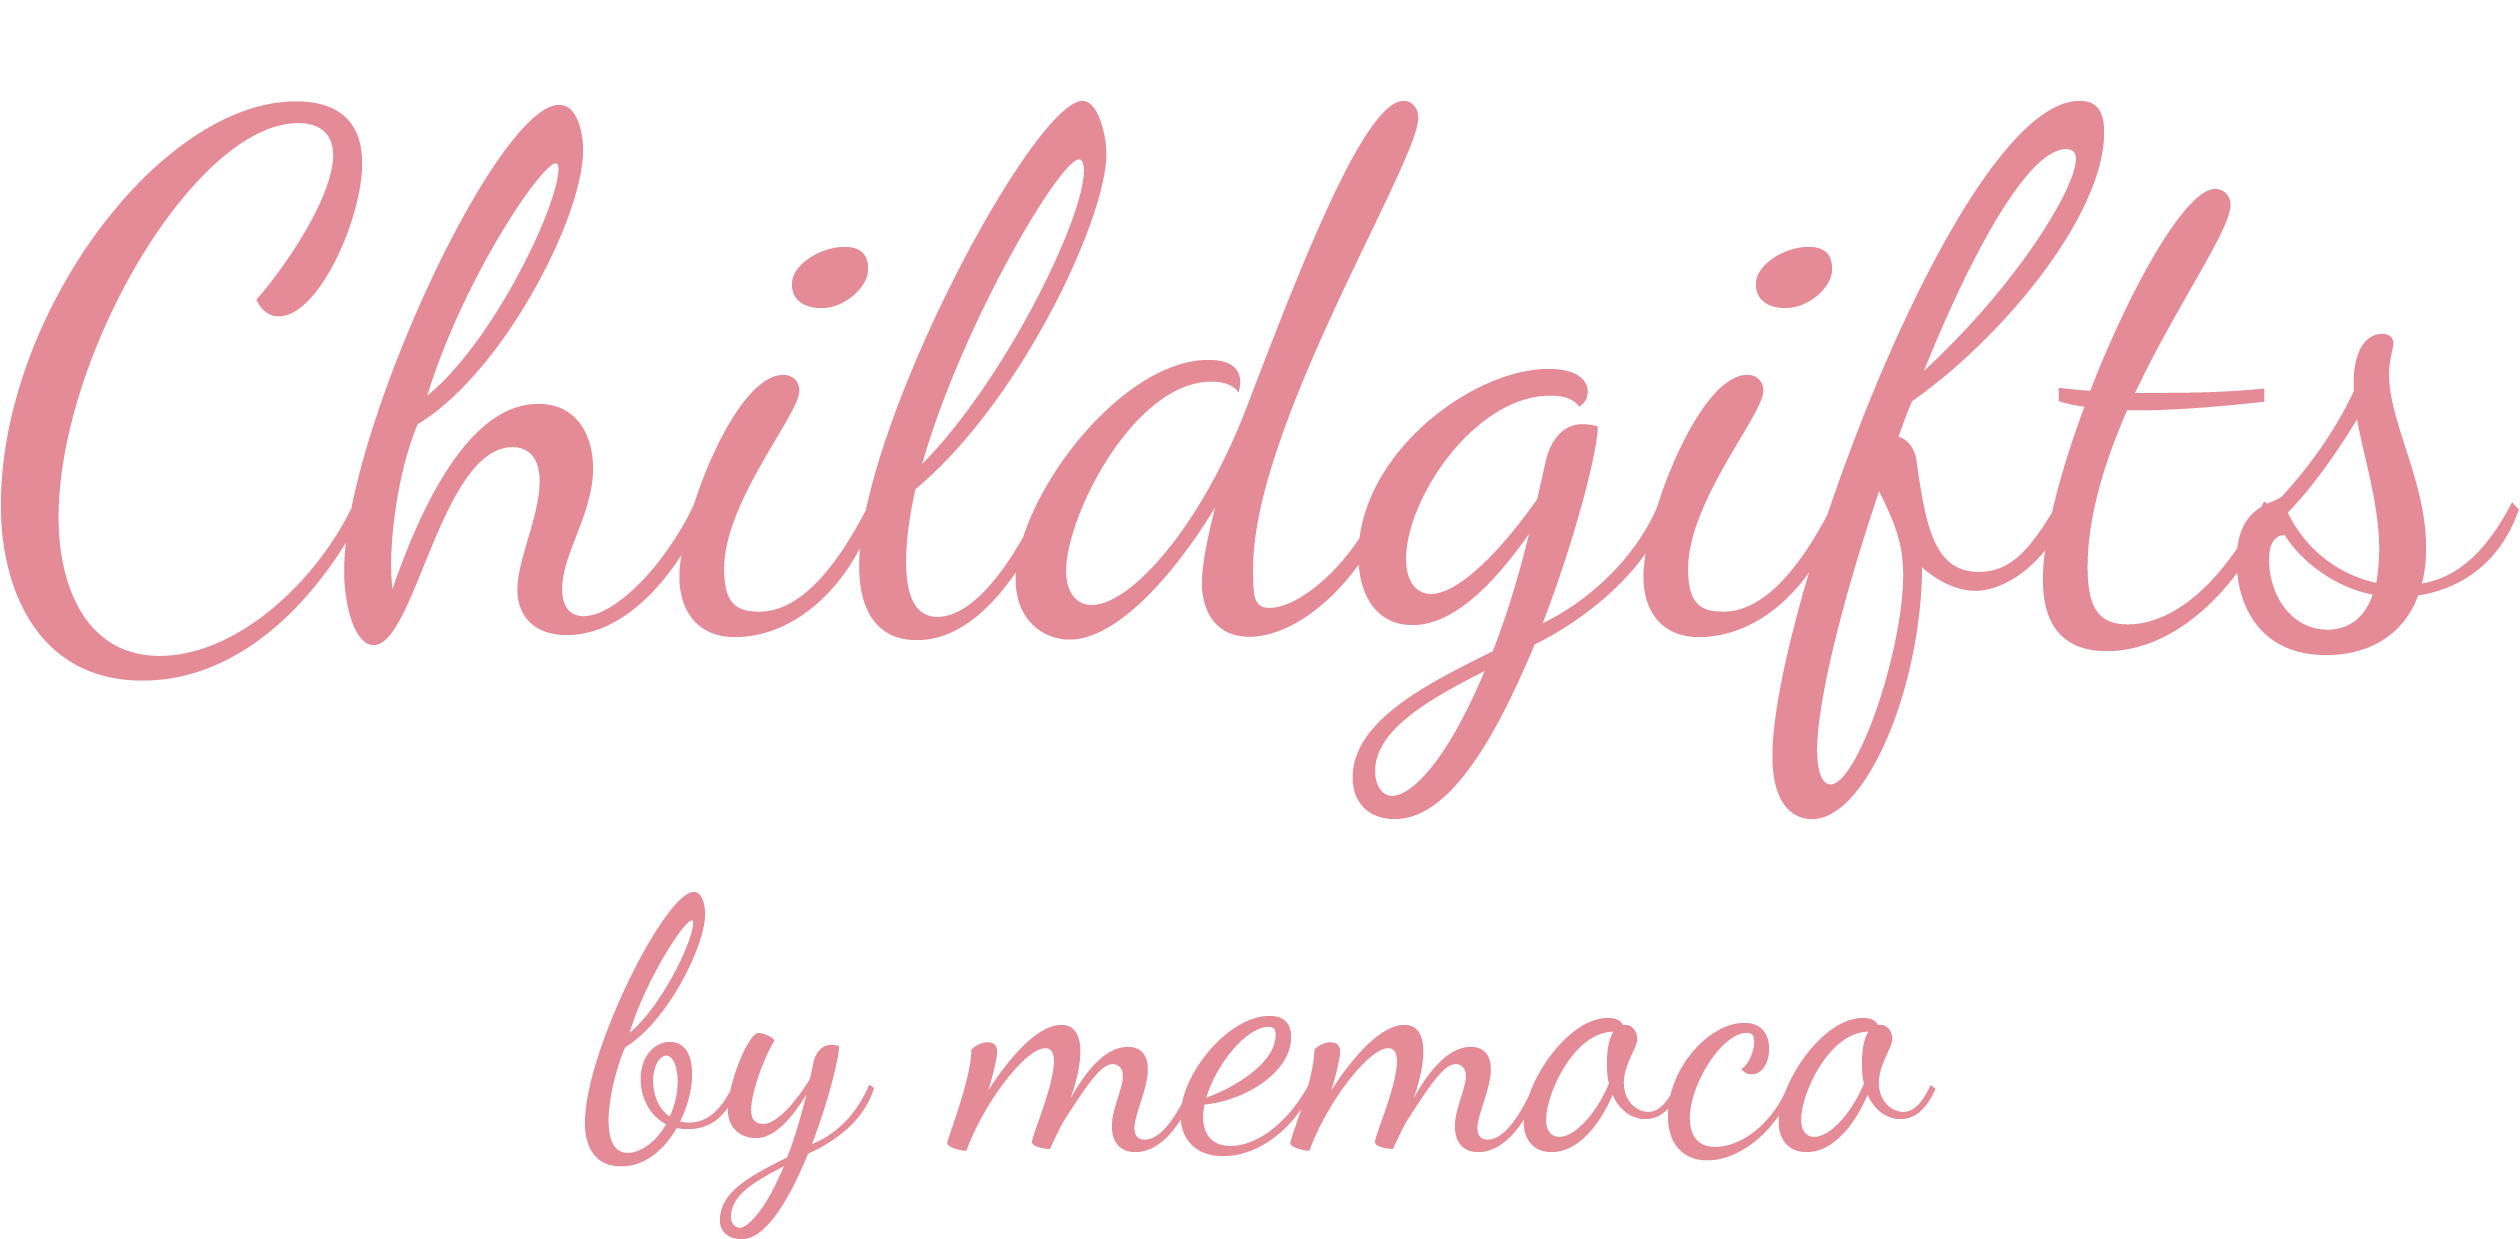 childgifts by memoco